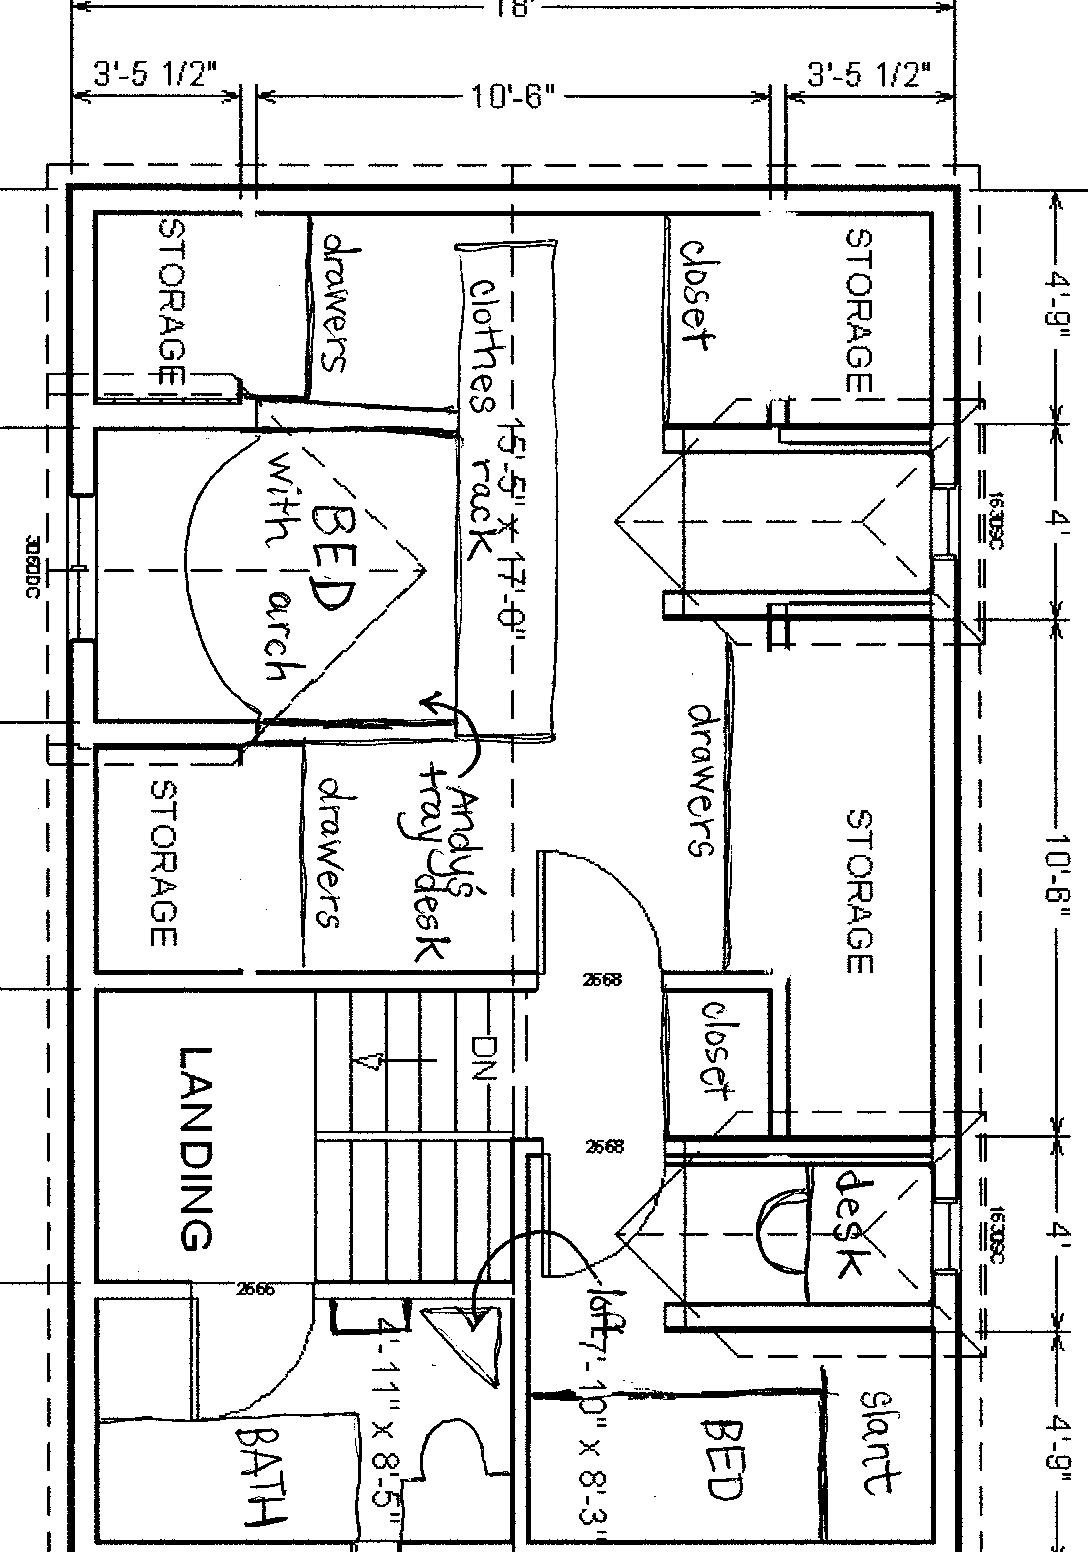 small house bluffton floor plans for a small house posted by wendy or andy chappell dick at 7 50 am